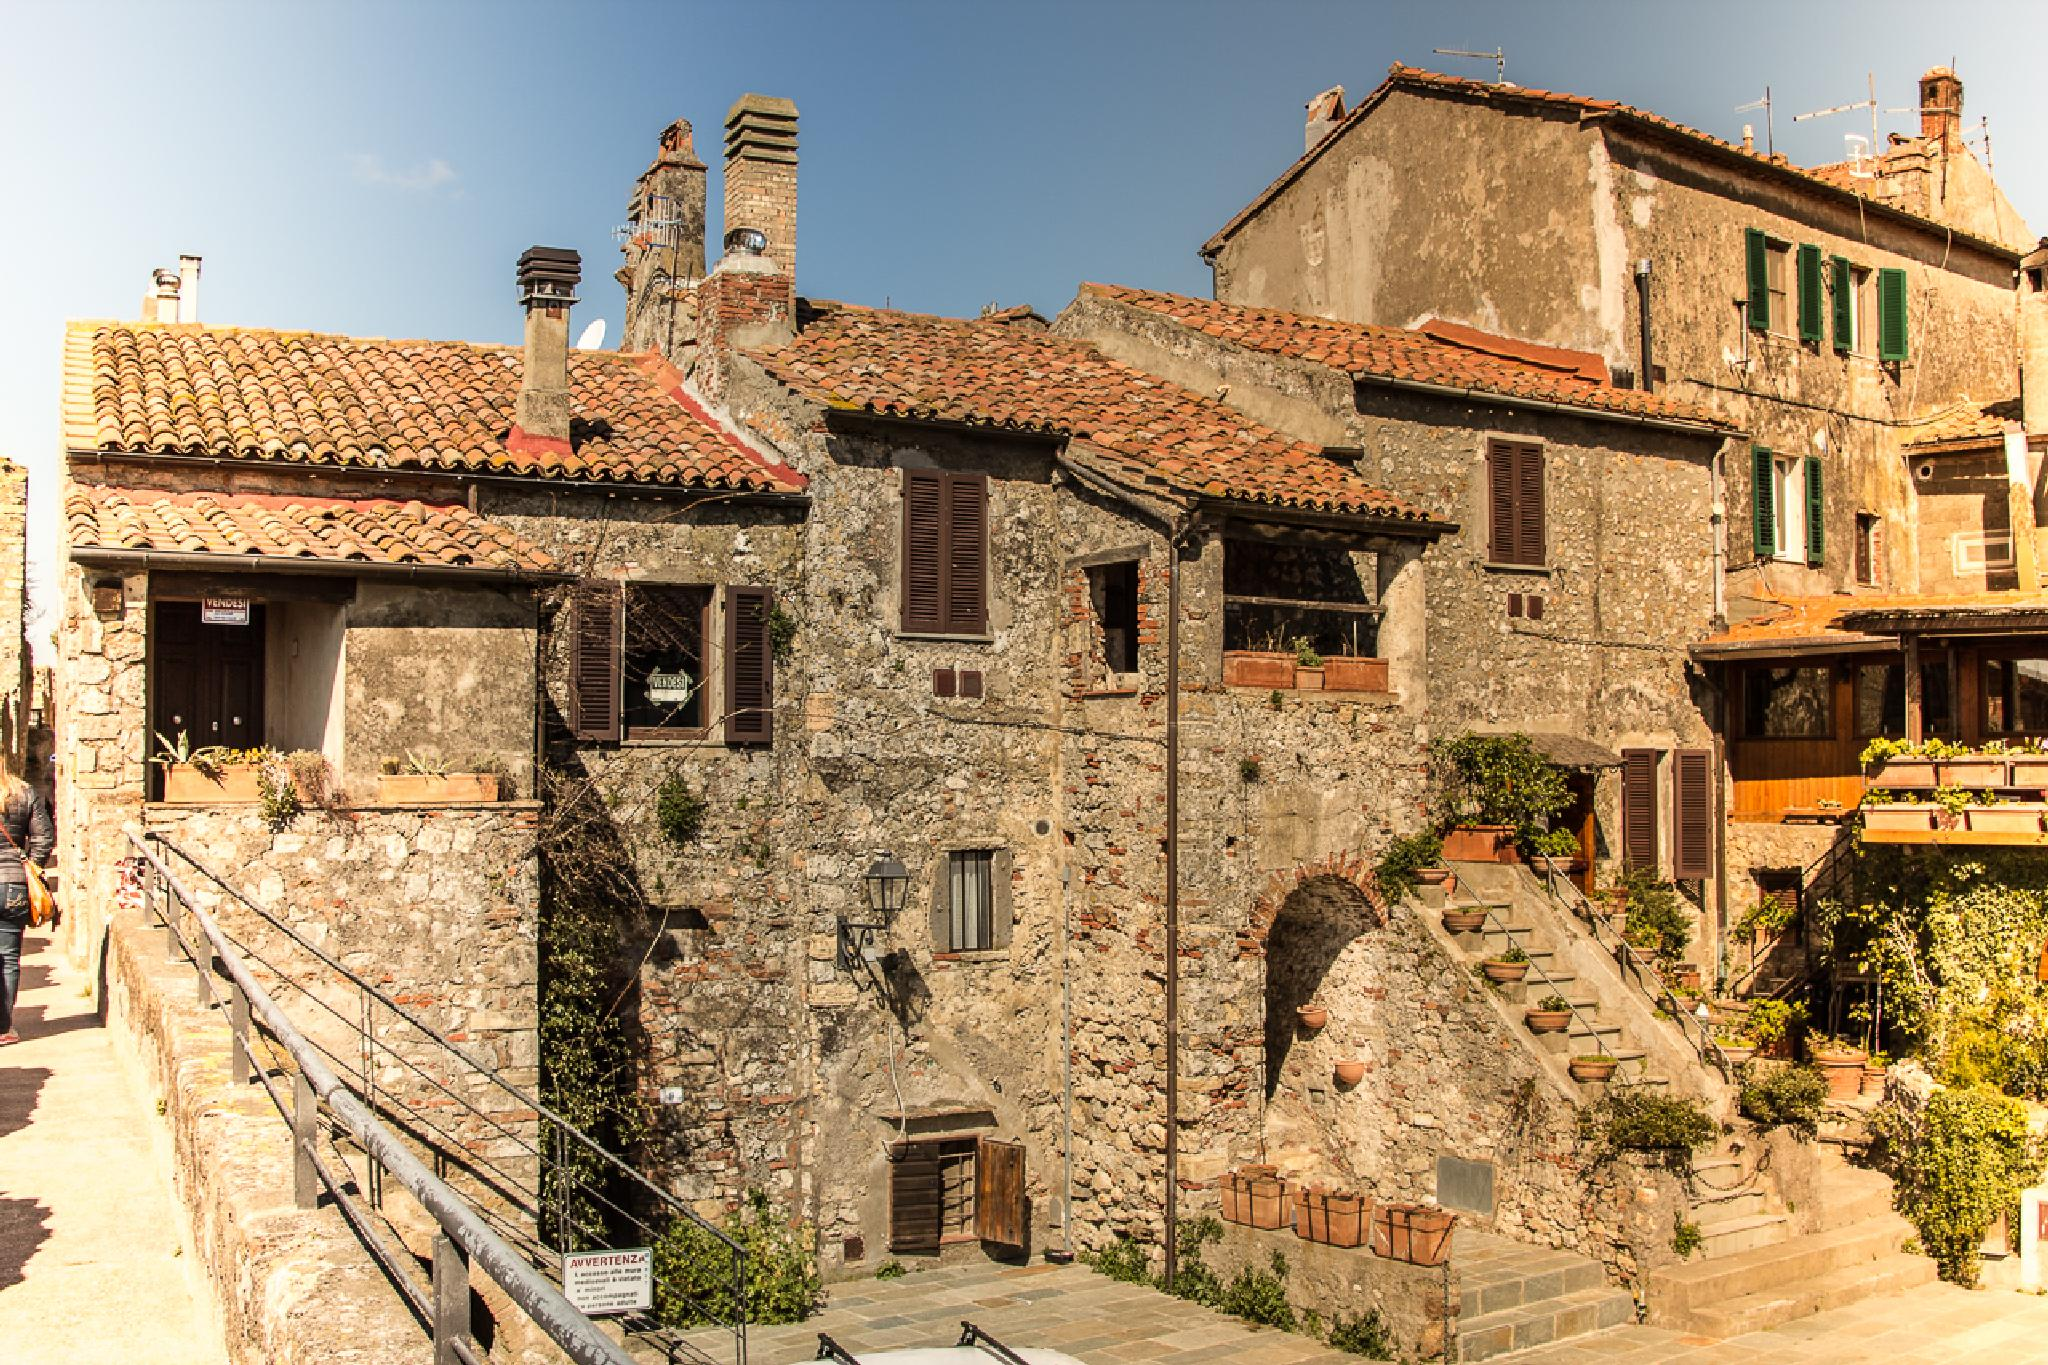 houses of Capalbio by Maurizio Fissi